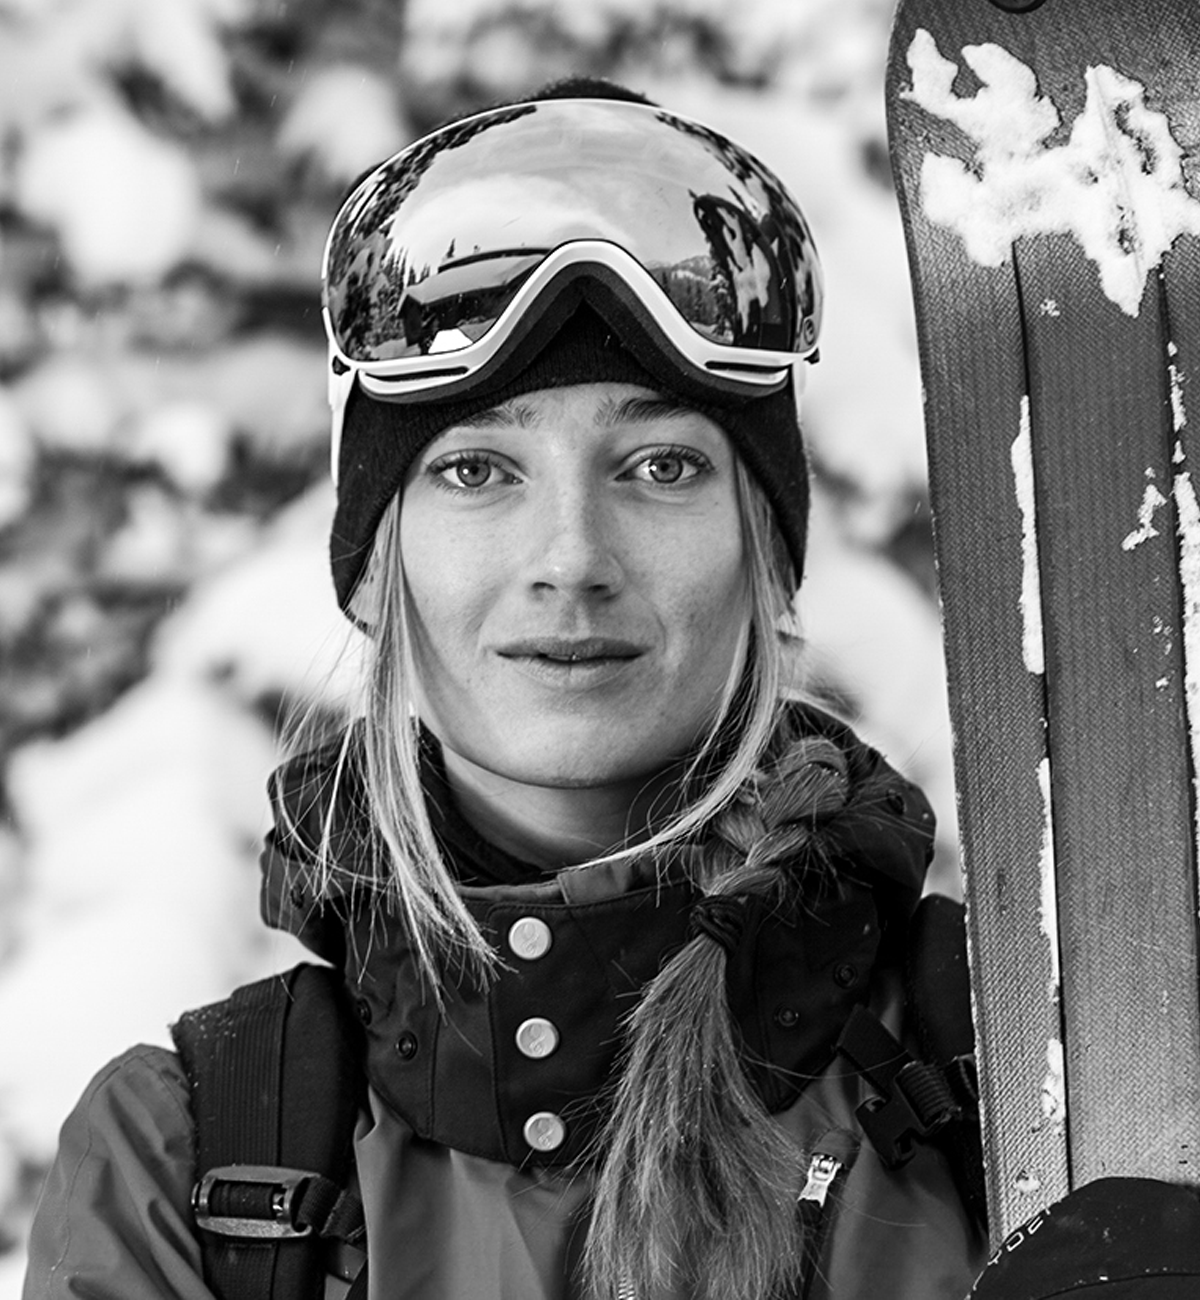 "Sierra Quitiquit // Creative Director - Producer   Never defined by traditional boundaries, Sierra Quitiquit has forged a successful career at the intersection of two remarkably different disciplines: fashion modeling and professional skiing. Through countless experiences around the world working in front of the lens for top international brands like Nike, Levi's, Lululemon and American Eagle, Sierra has had the opportunity to assimilate the inner workings of the creative and production processes through collaborating with some of the industry's most renowned talents. This extensive experience has propelled Sierra's career to evolve beyond her role as subject and allowed her to truly understand what it takes to produce genuinely compelling material.   Sierra is walking a path that symbolizes the multi-talented persona of the millennial generation – constantly seeking a deeper connection with our natural world by pursuing her passions in skiing, surfing, travel, yoga and a life unbound. ""My goal is to create content that forges authenticity, inspiration and high level production for brands seeking to resonate with consumers in an impactful and meaningful way."""